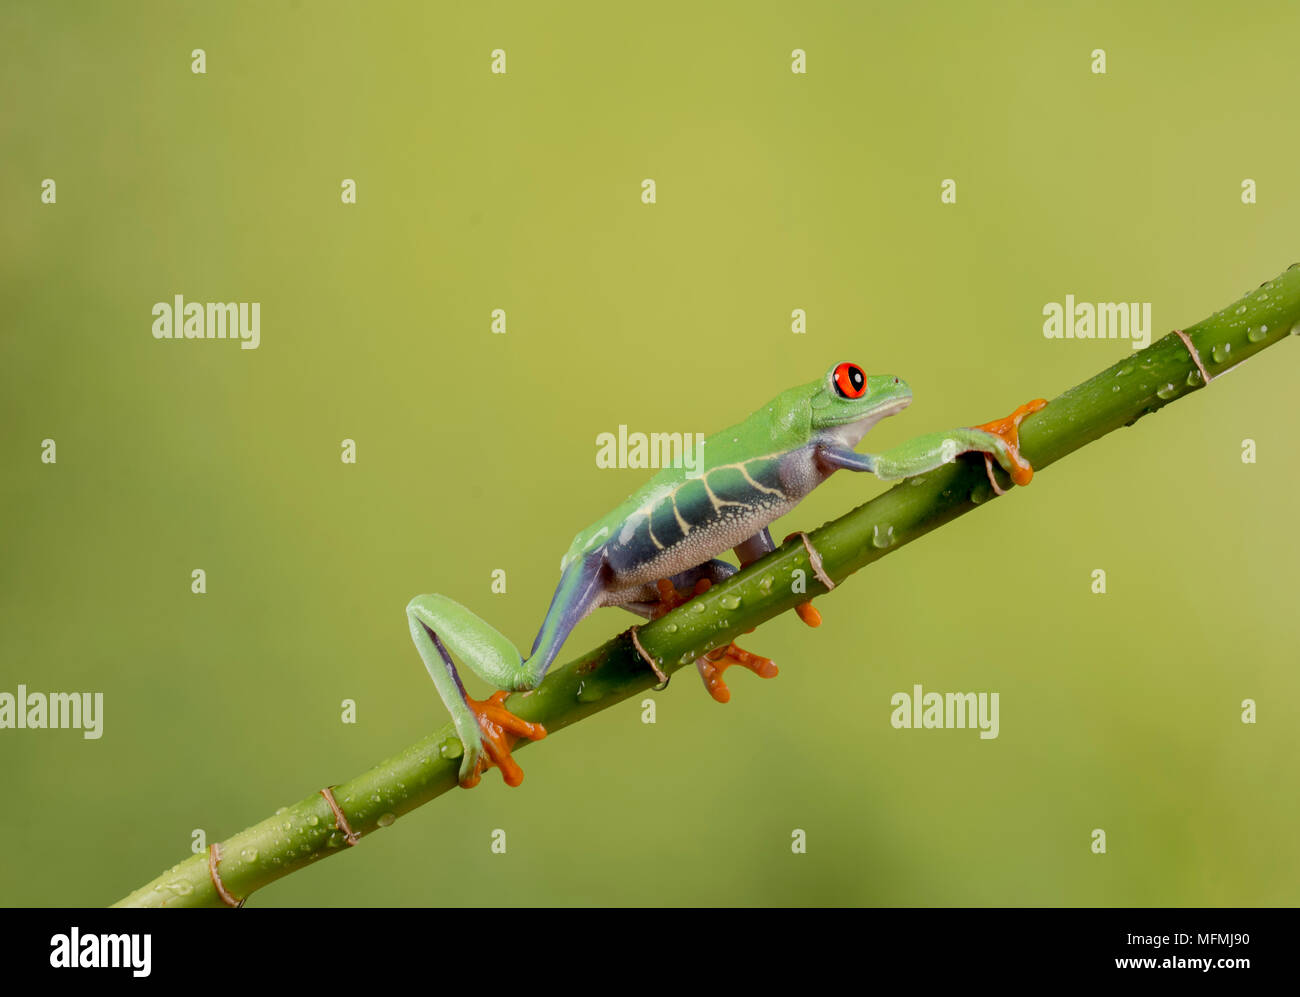 Red eyed tree frogs ina  studio setting Stock Photo